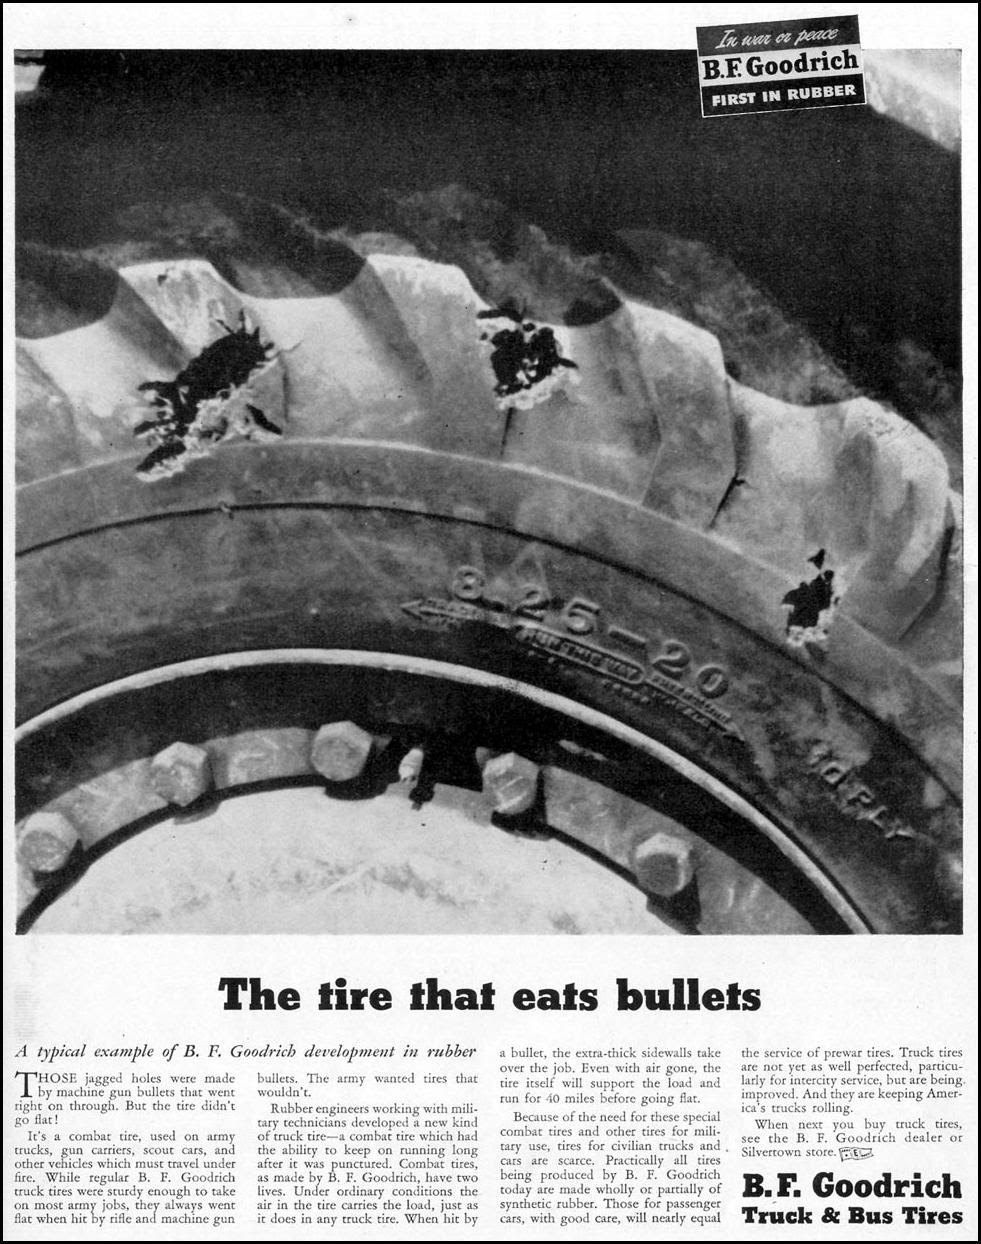 B. F. GOODRICH TRUCK AND BUS TIRES LIFE 02/21/1944 p. 3